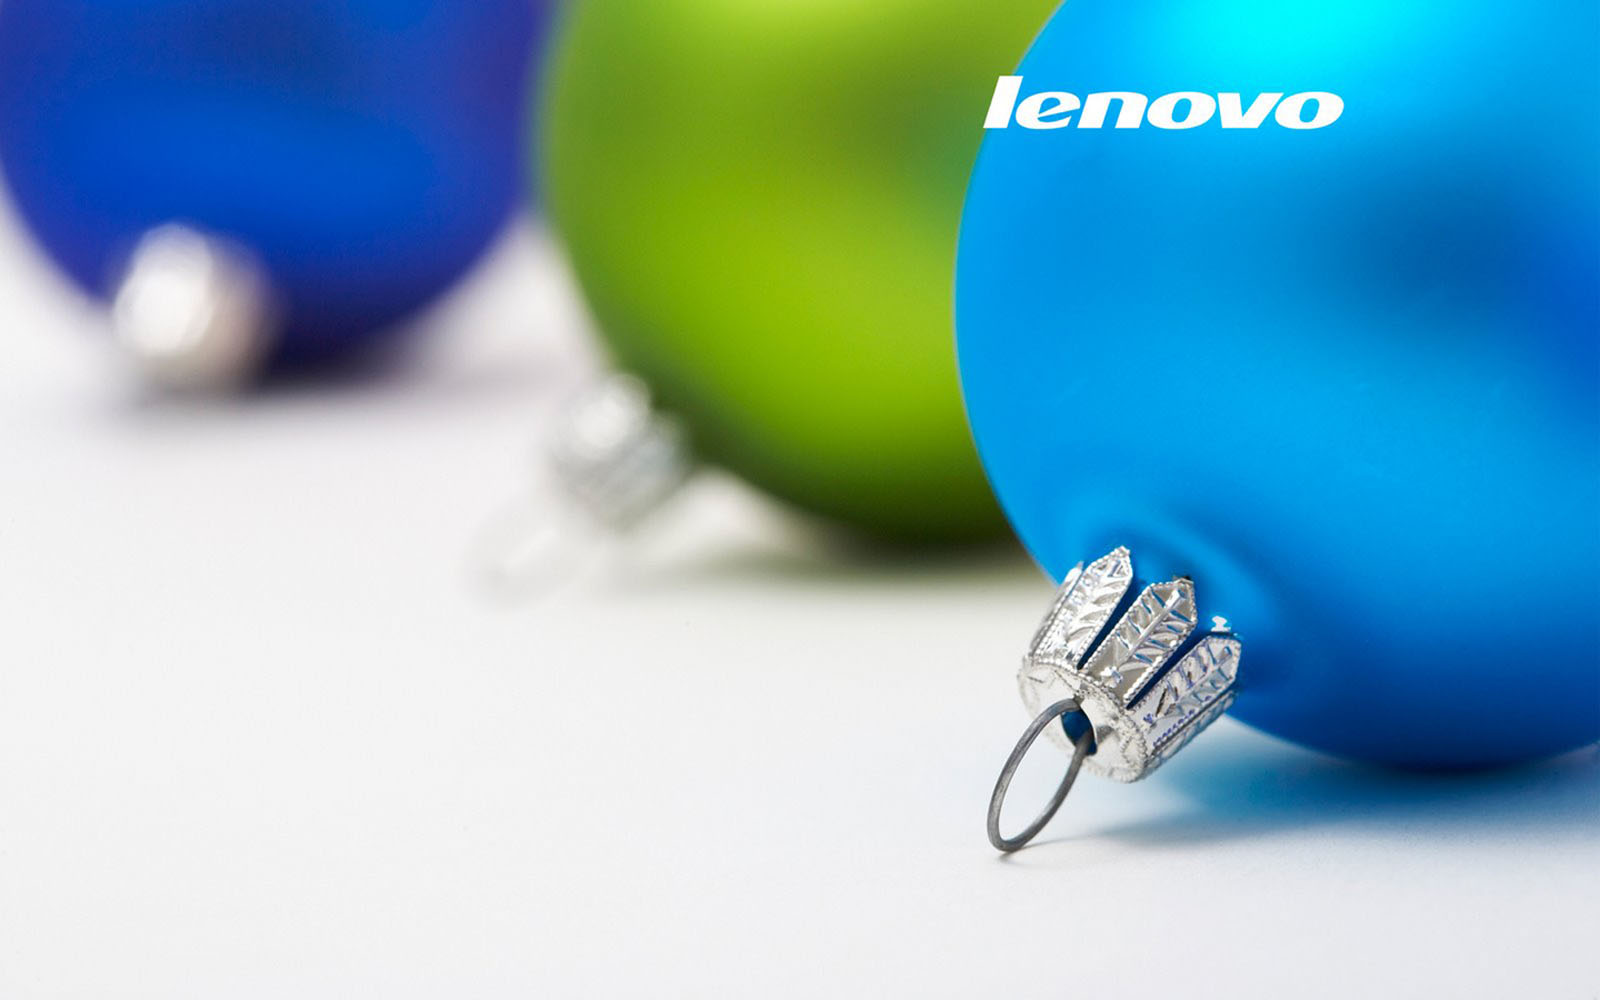 Free Tag Lenovo Laptop Wallpapers Backgrounds